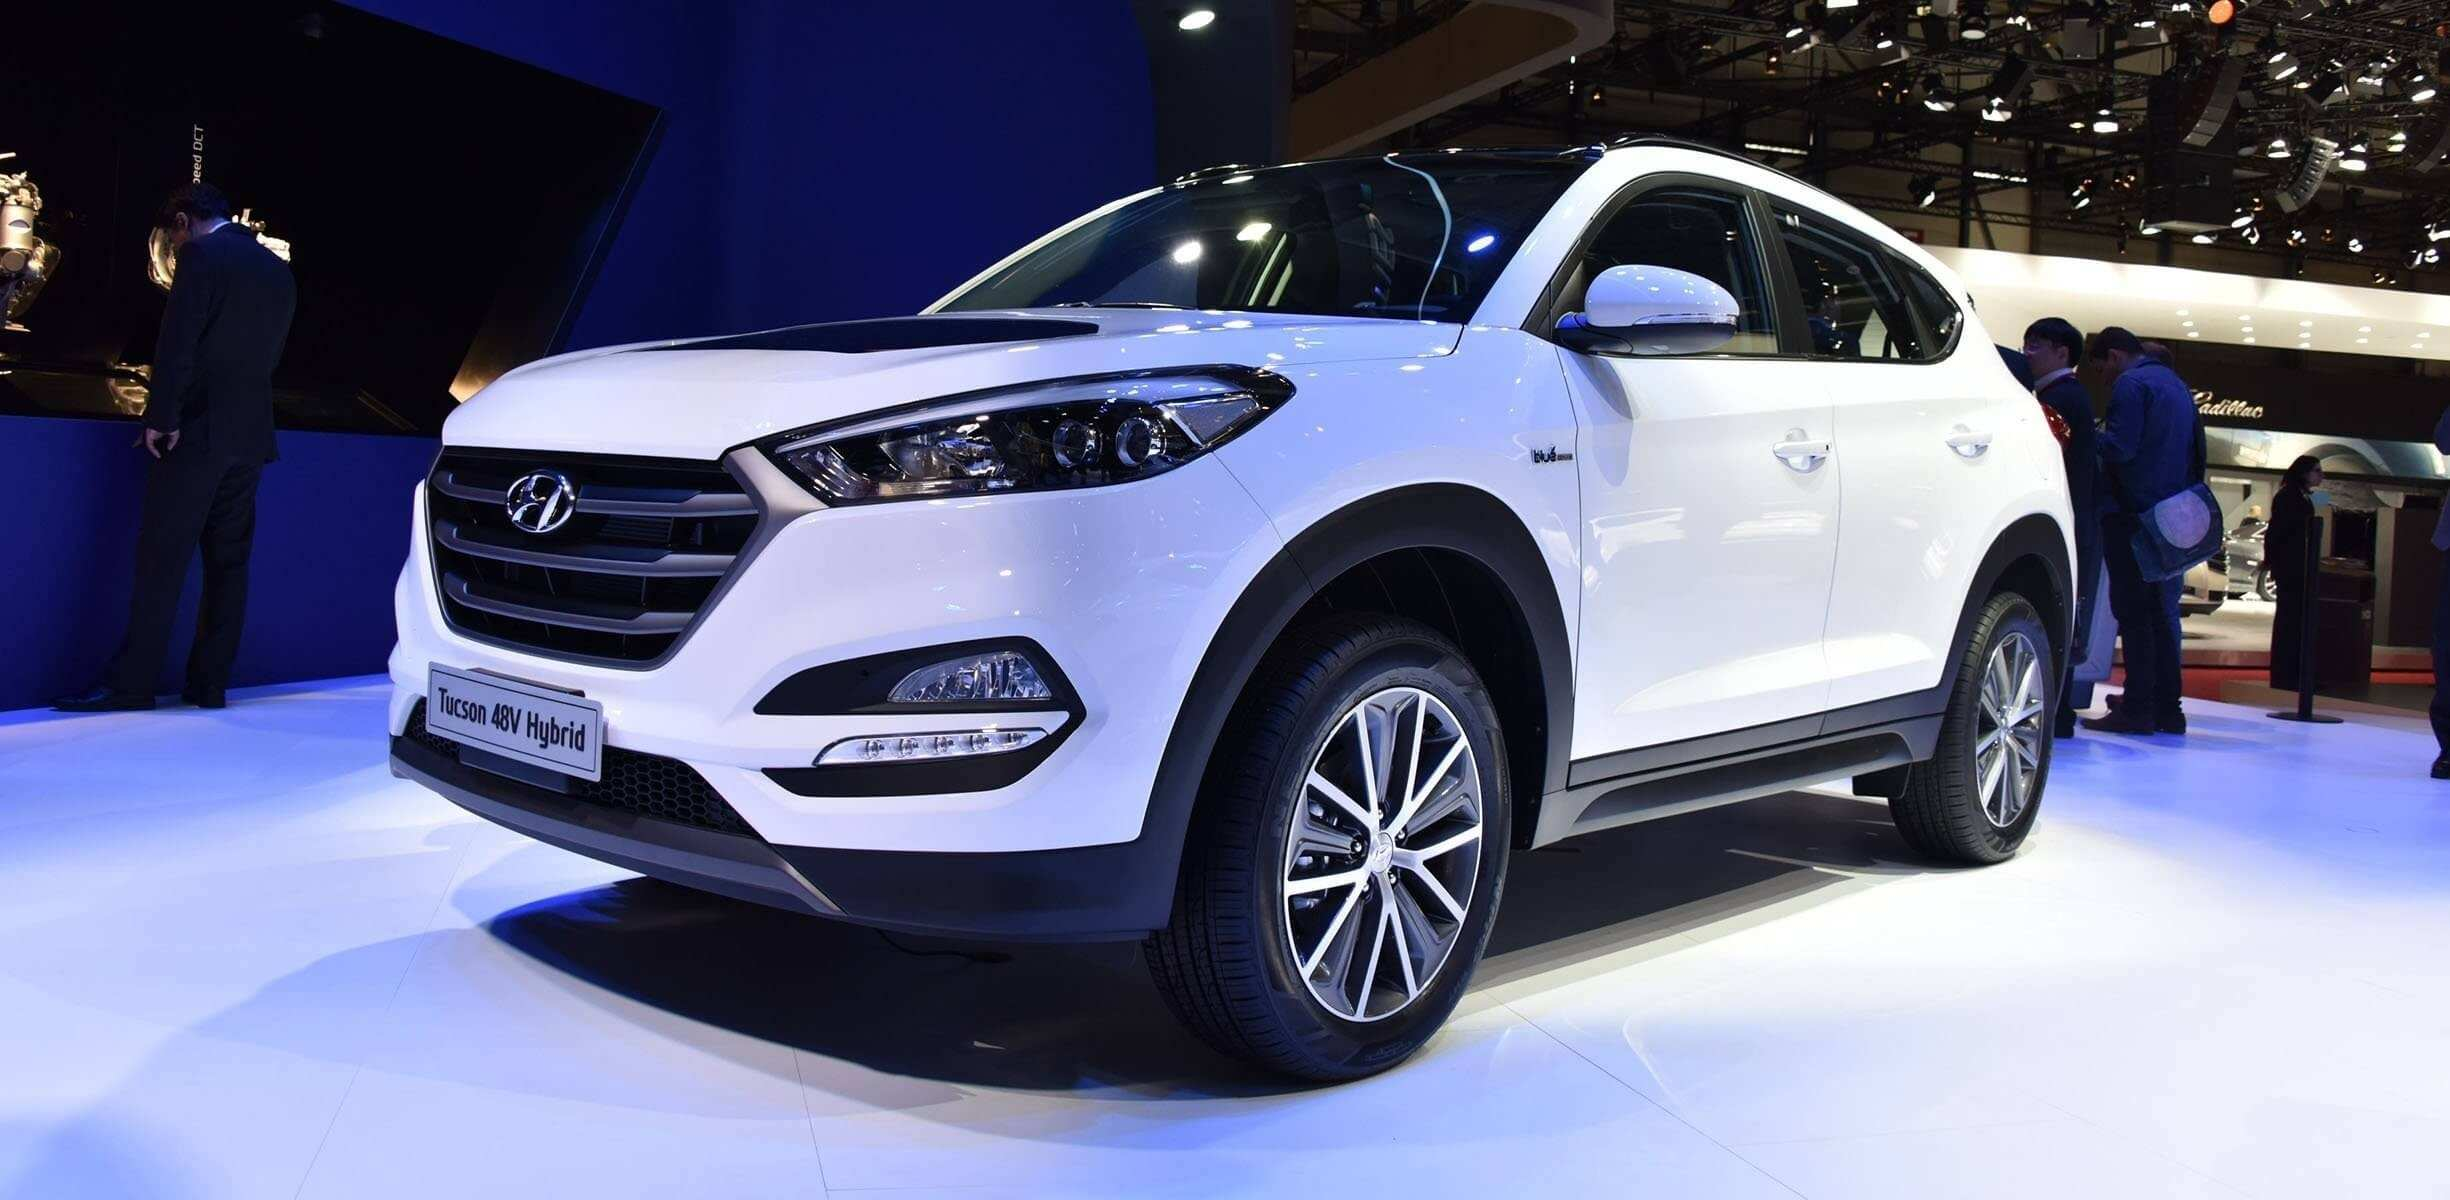 22 All New 2020 Hyundai Ix35 Overview